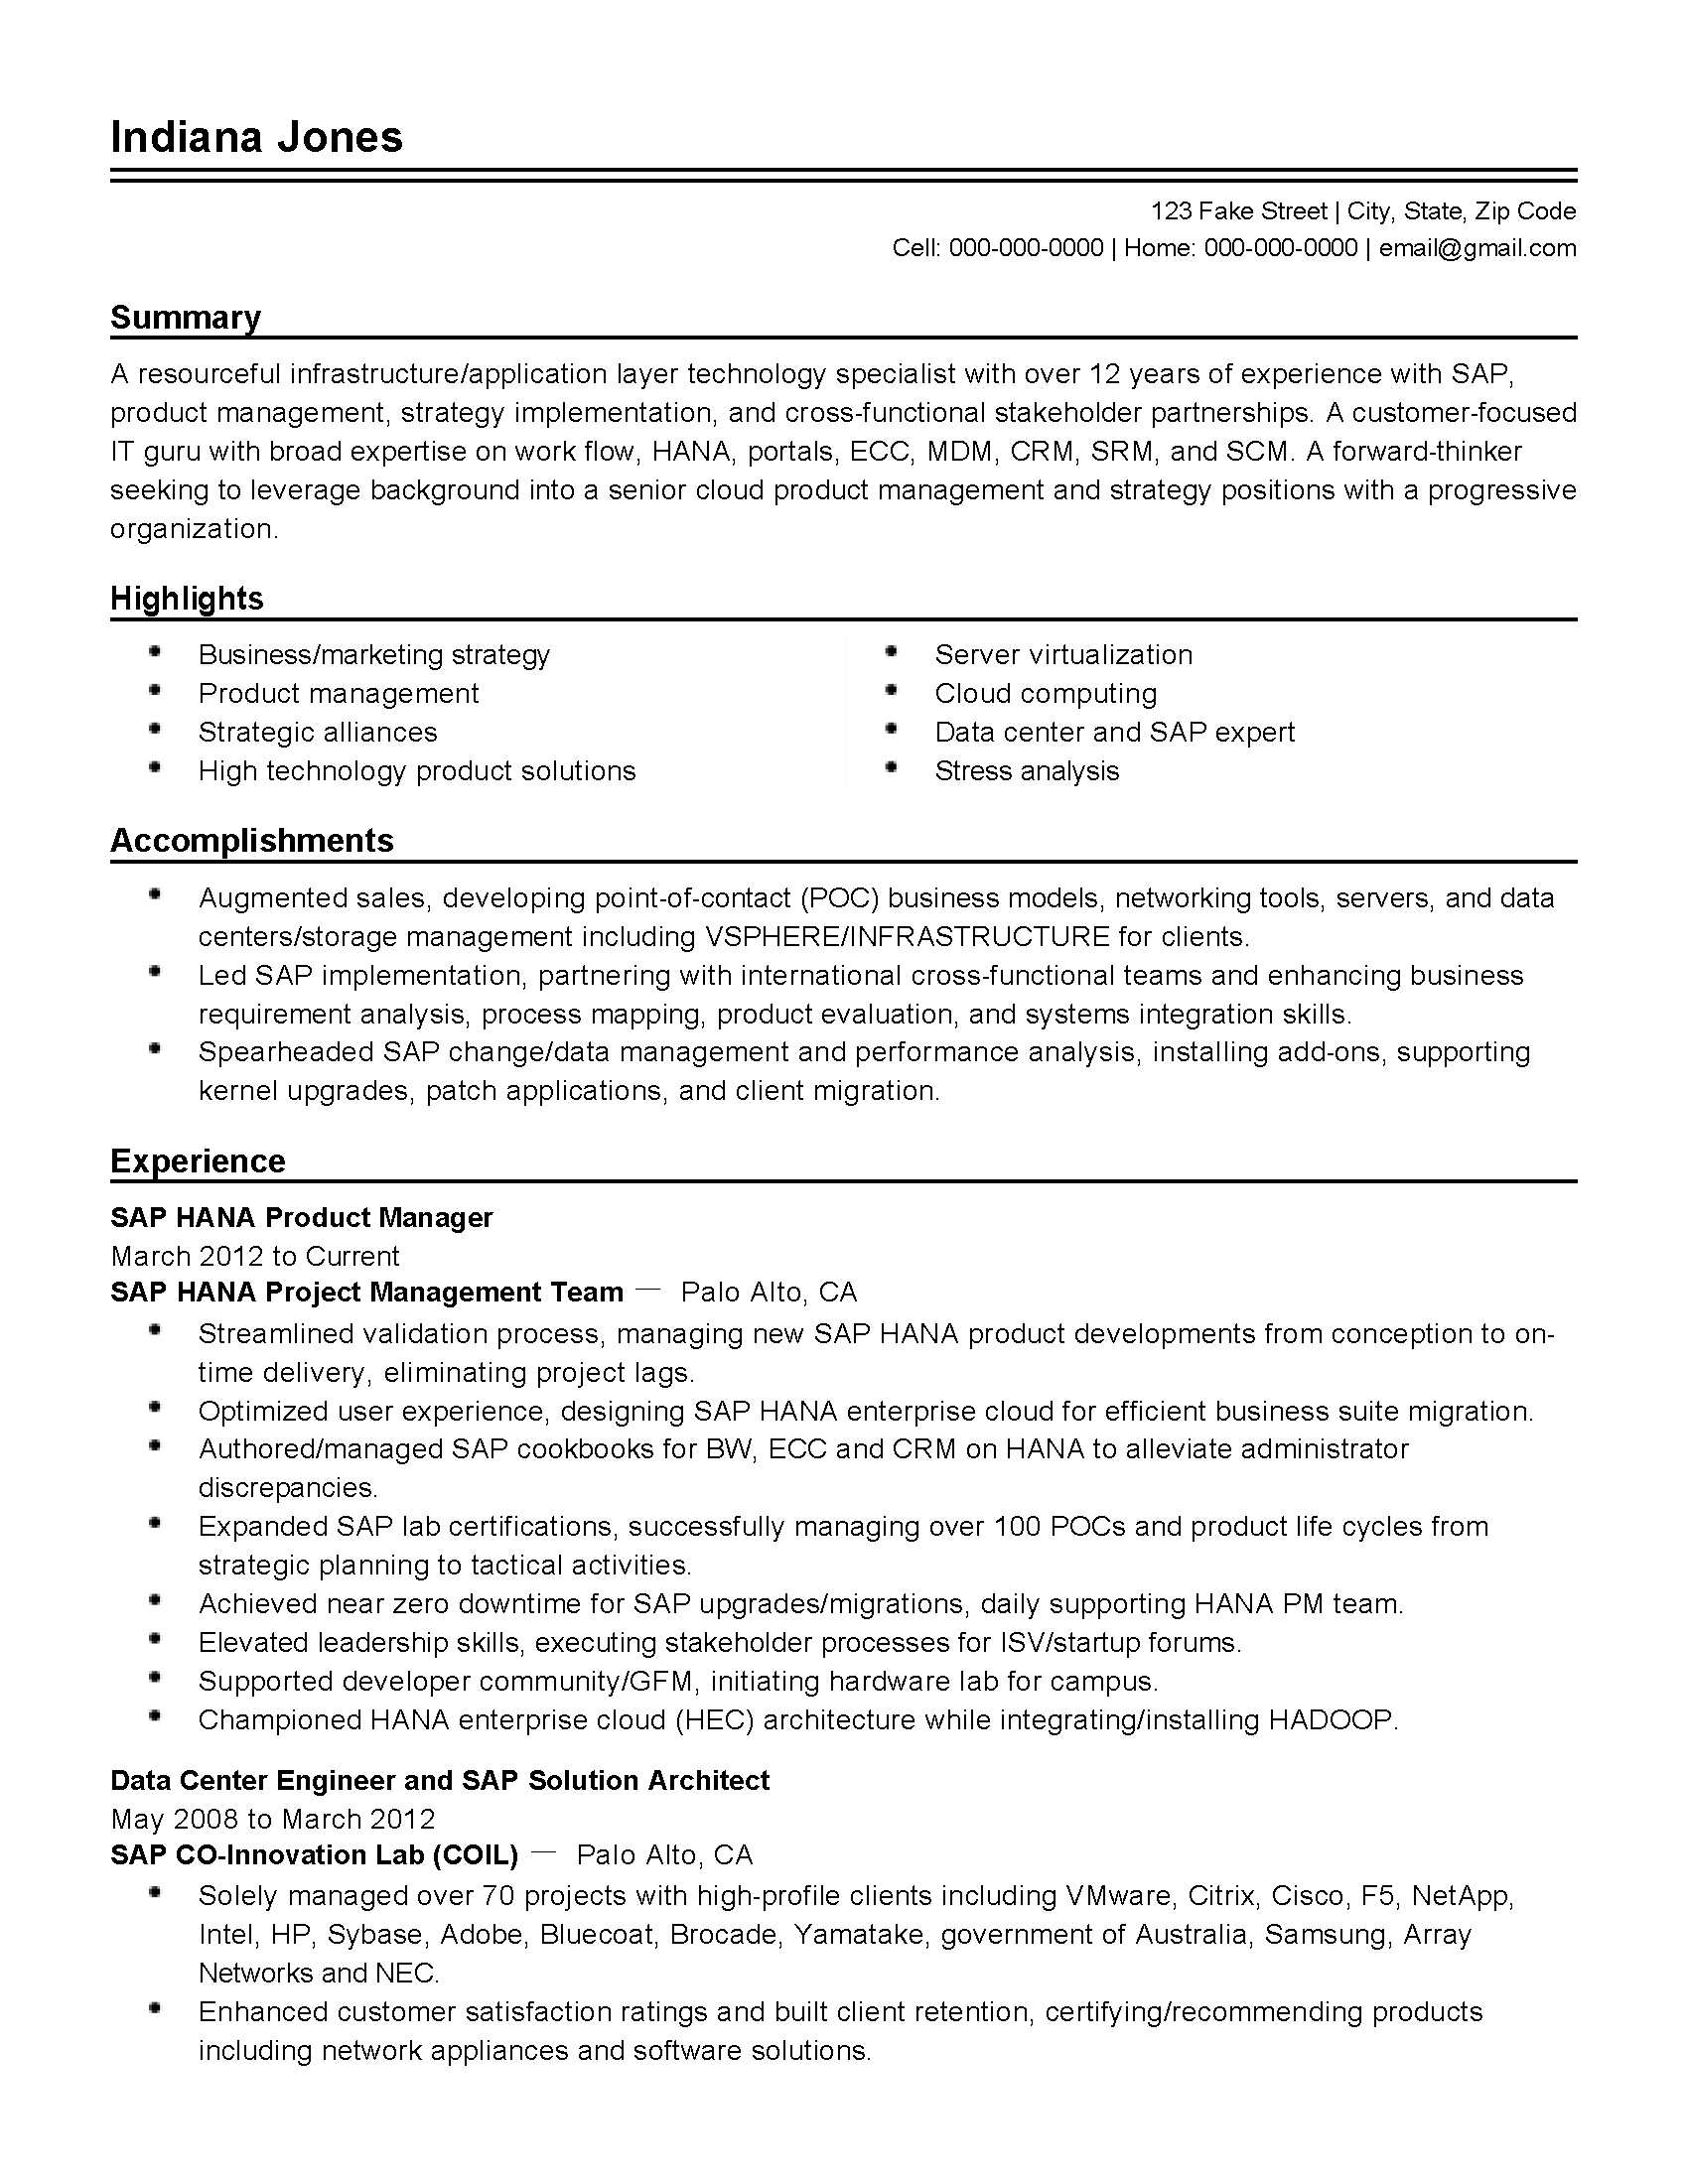 Company Profile Sample For Pest Control | Cover Letter ...